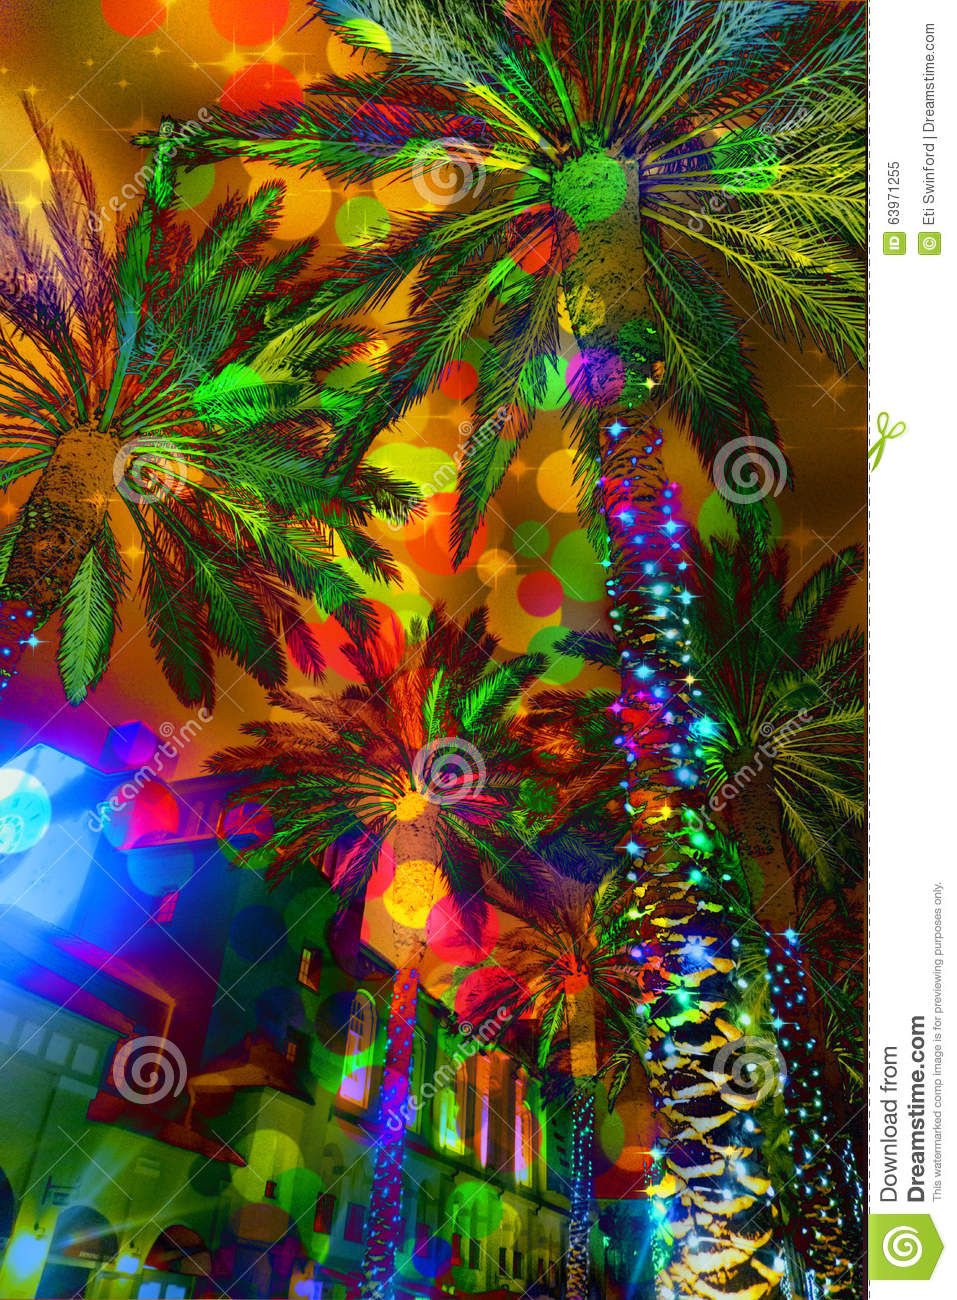 Festive Lights Abstract Palm Trees Stock Photo - Image